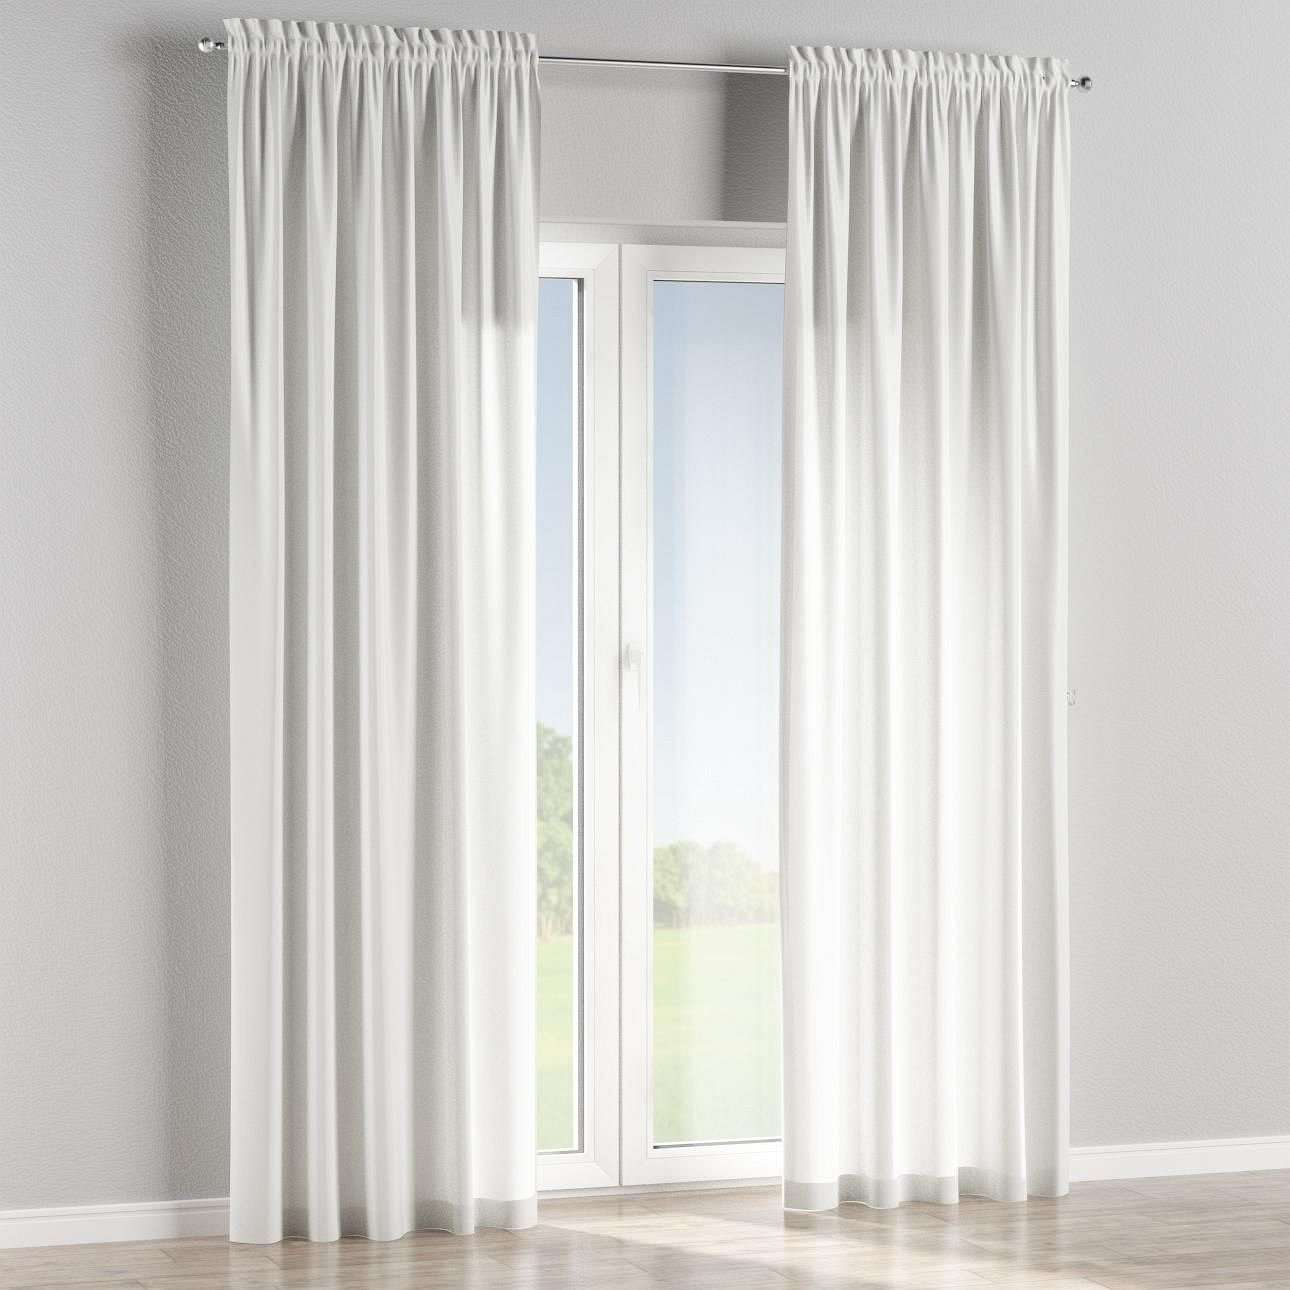 Slot and frill curtains in collection Mirella, fabric: 141-12